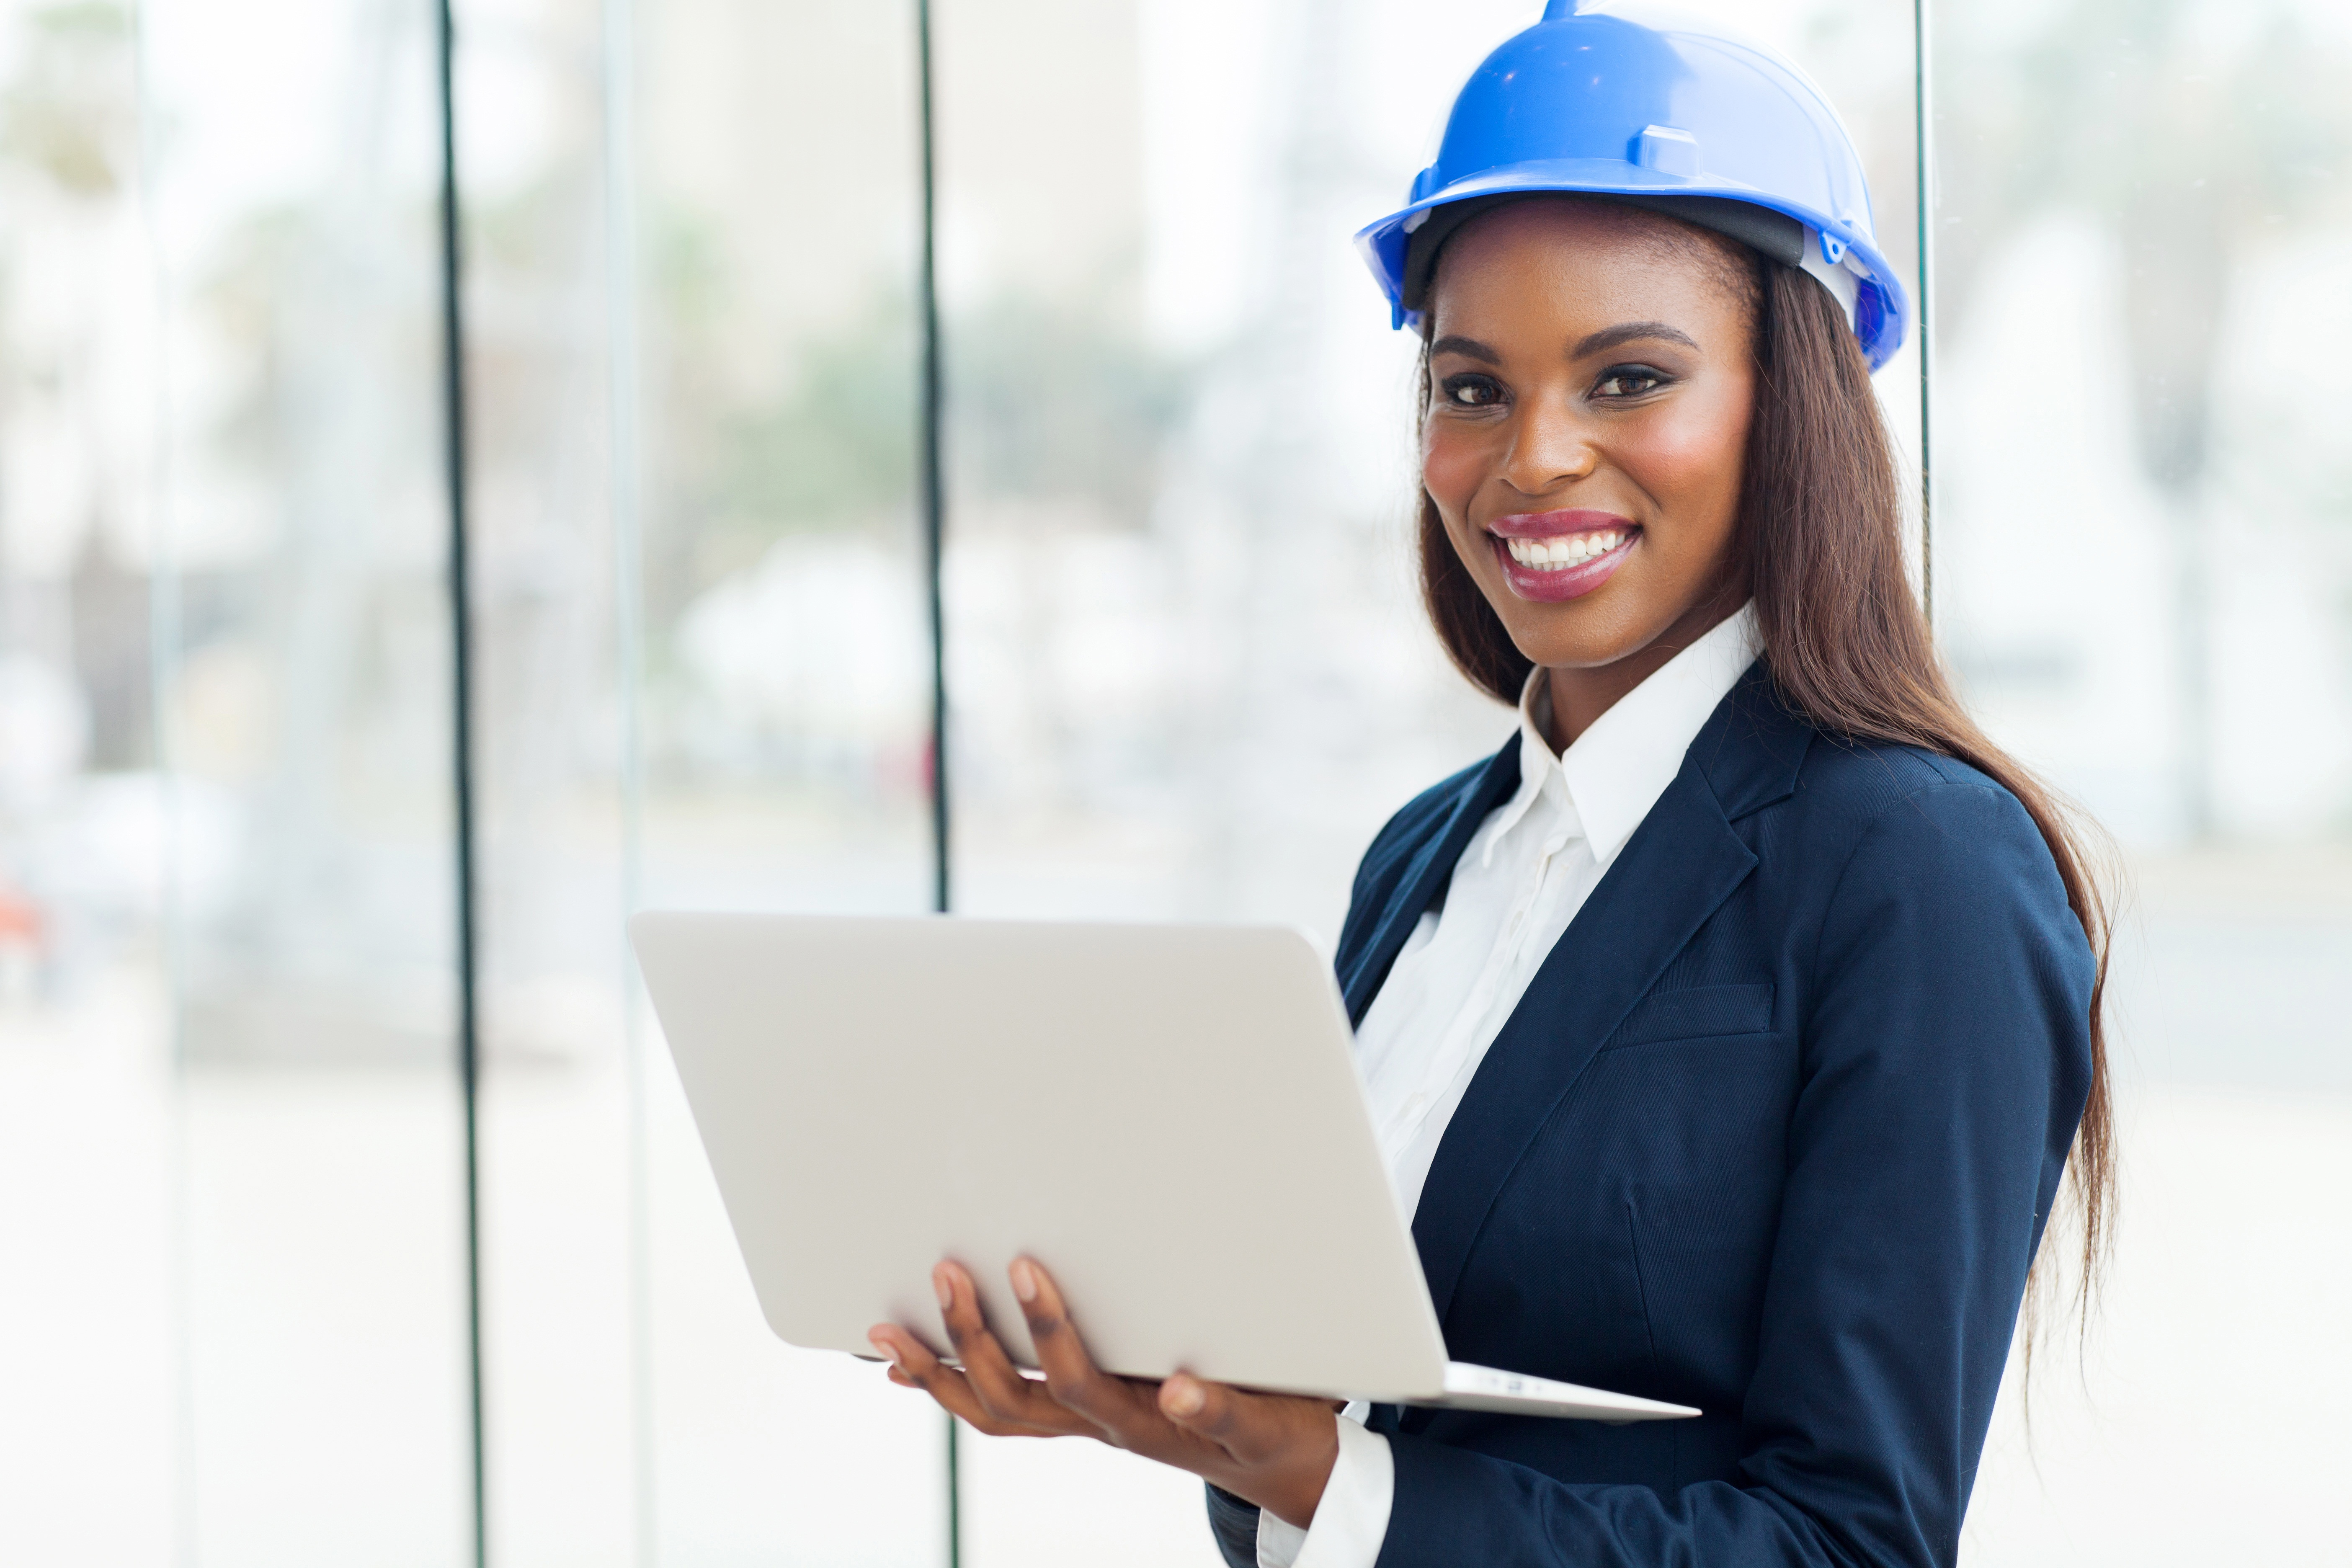 Top 5 Best Paying Jobs For Women We Are Unperfect